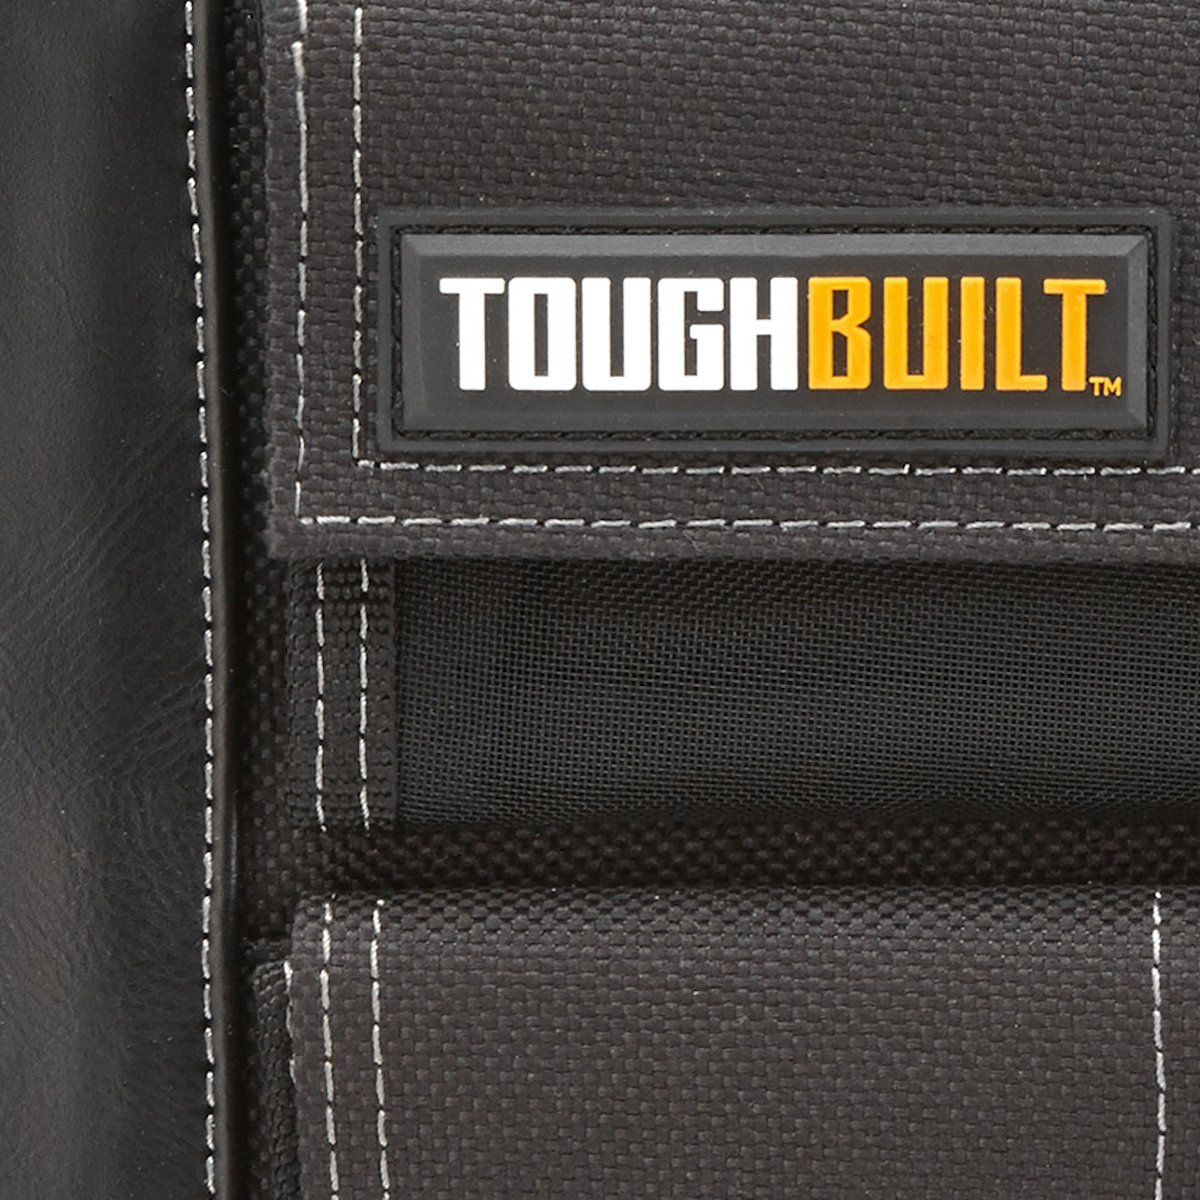 ToughBuilt - iPad Organizer + Grid Notebook - 3 External Quick-Access Accessory Pockets, Business Card Slots, Heavy-duty Construction with Pocket Reinforcement (TB-56-IP-C) NEW